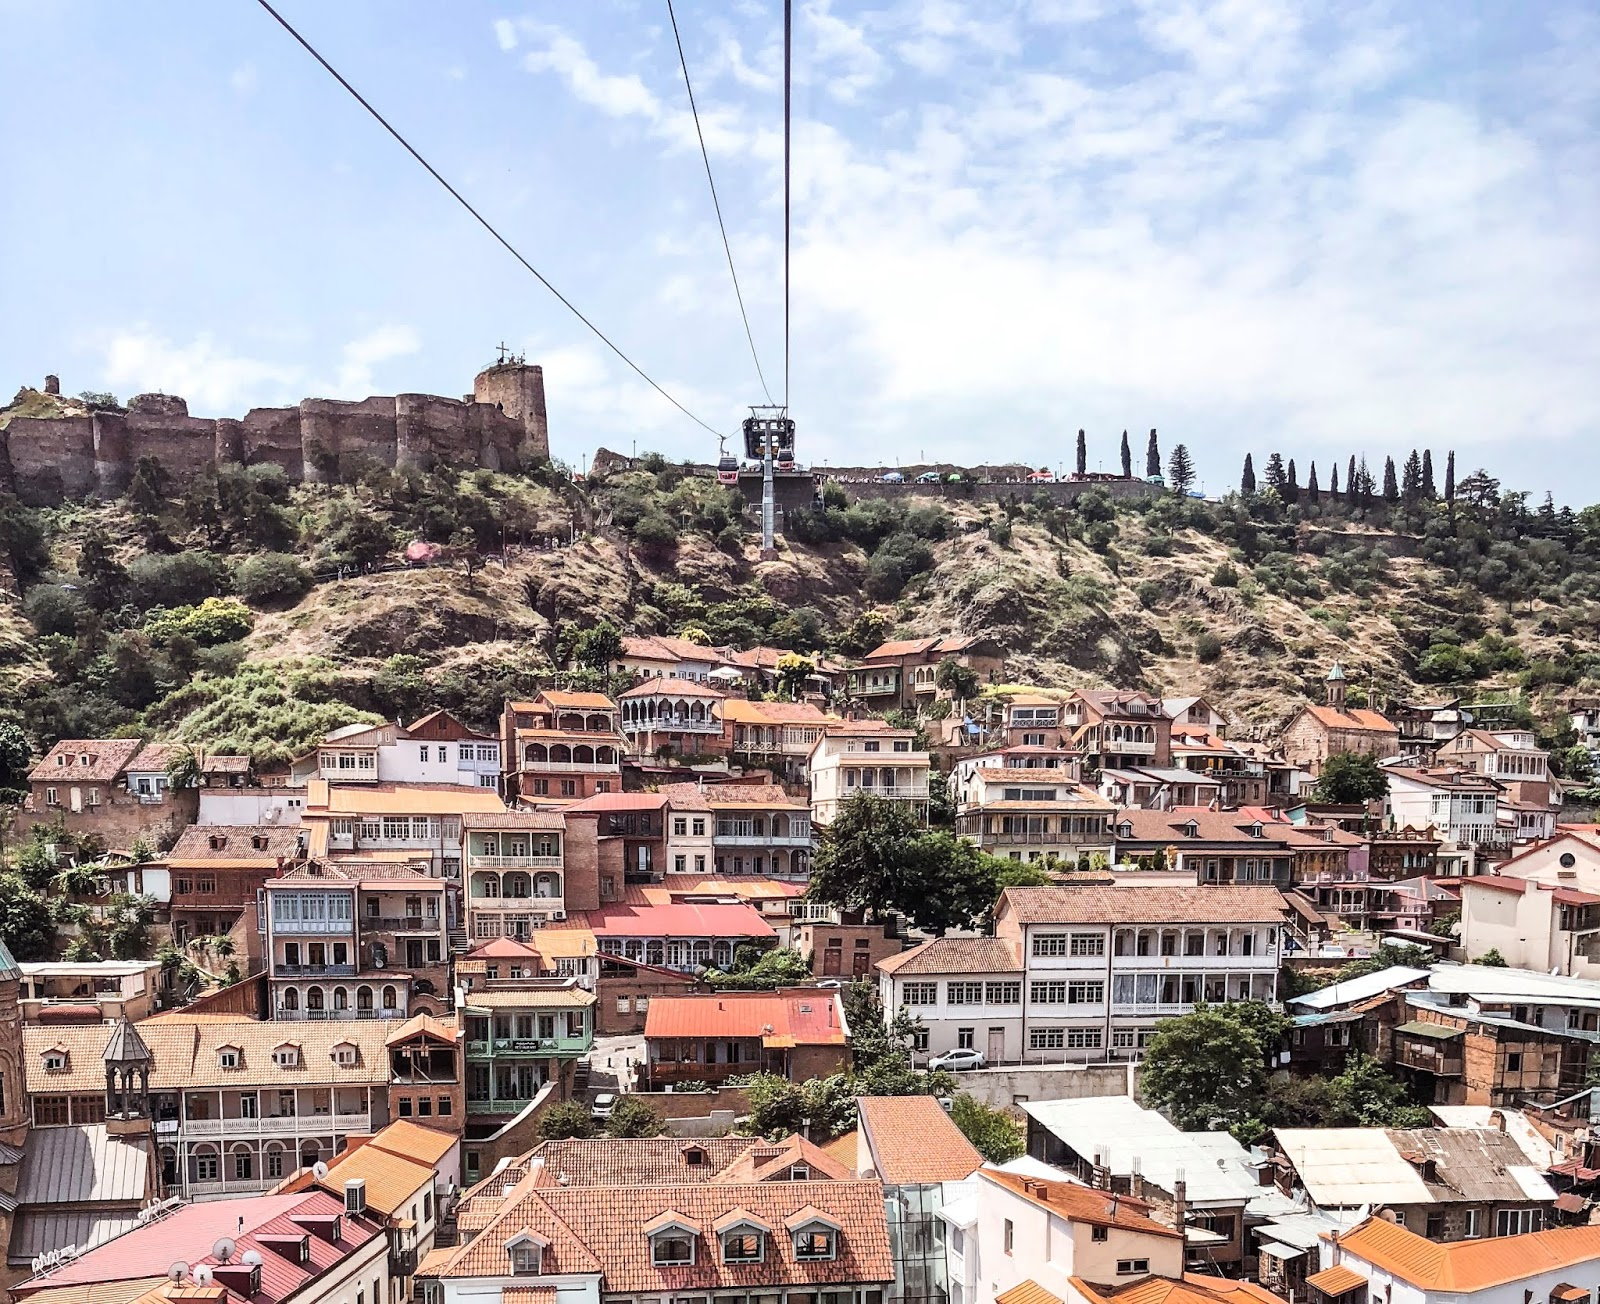 10 Things To Do In Tbilisi, Georgia